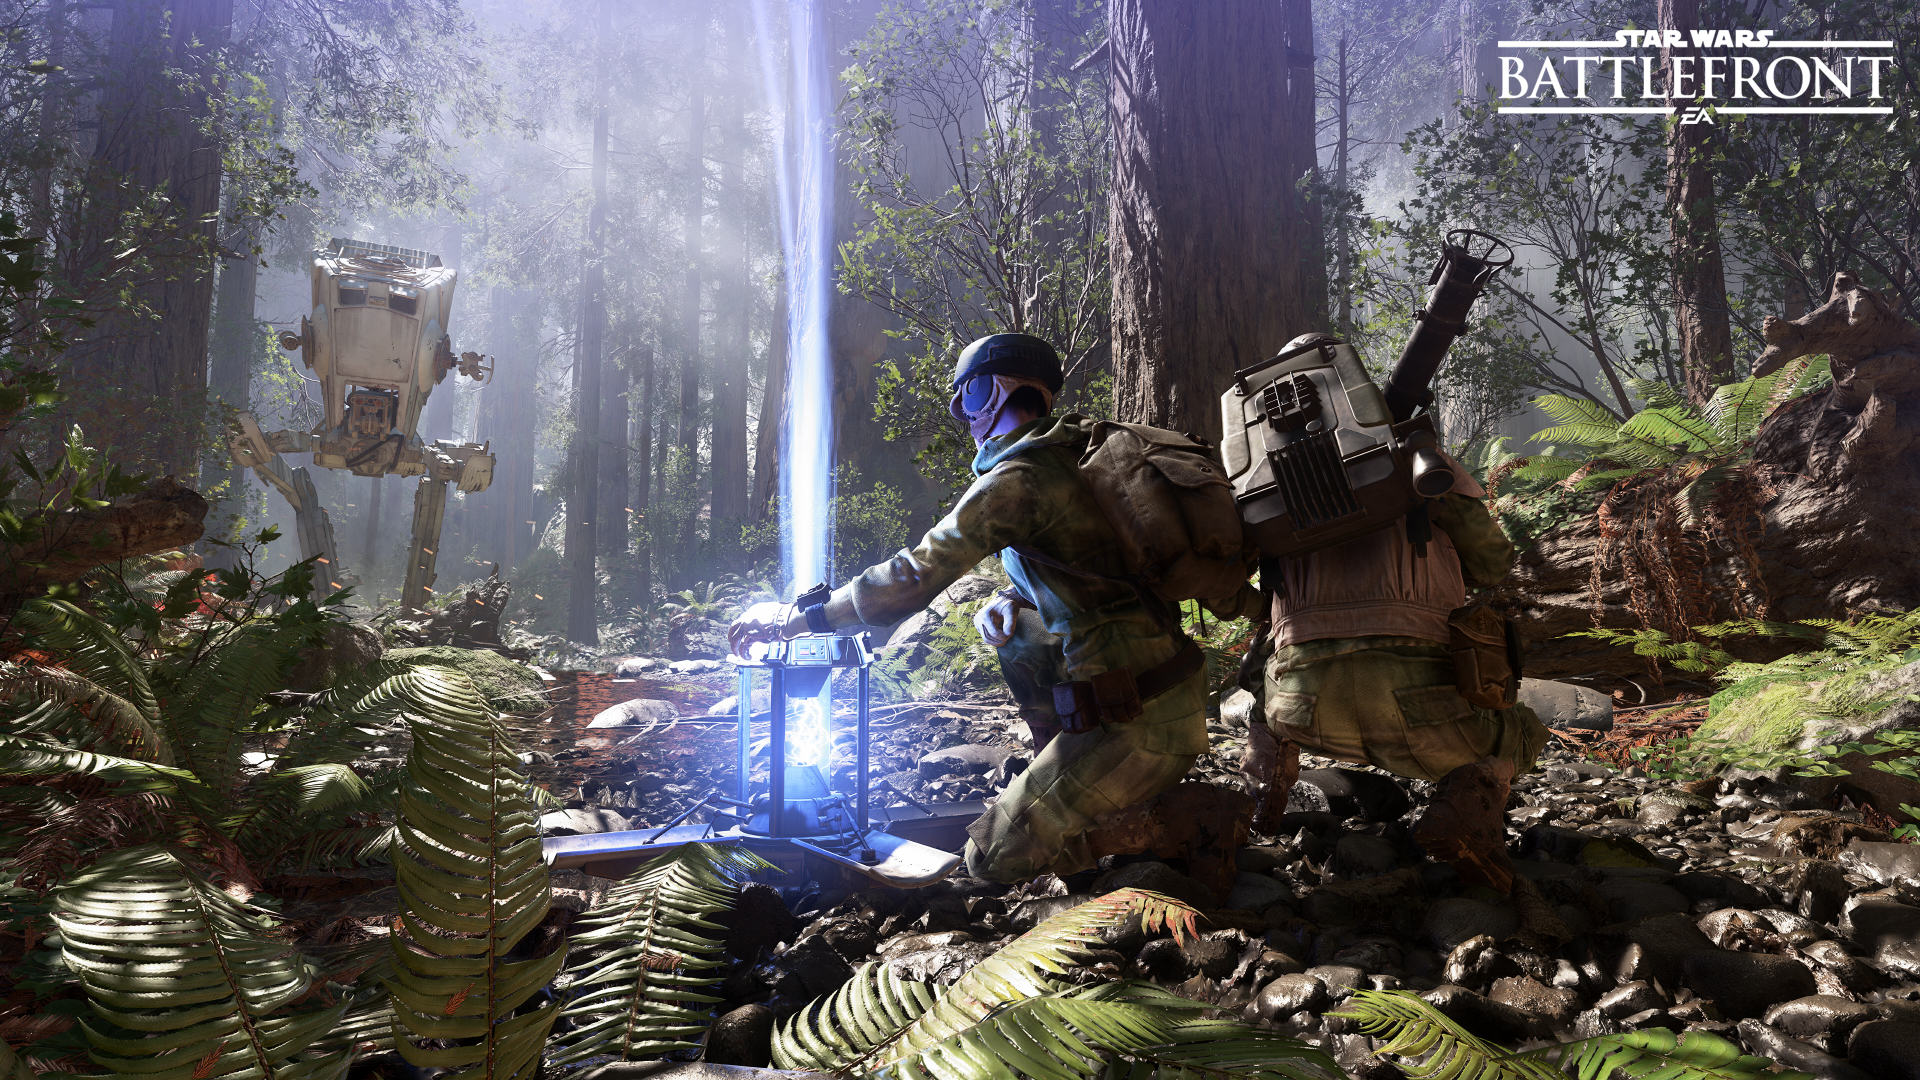 UNILAD N1wyaFV Imgur3 Star Wars: Battlefront Looks Stunning In These Desktop Backgrounds And Images